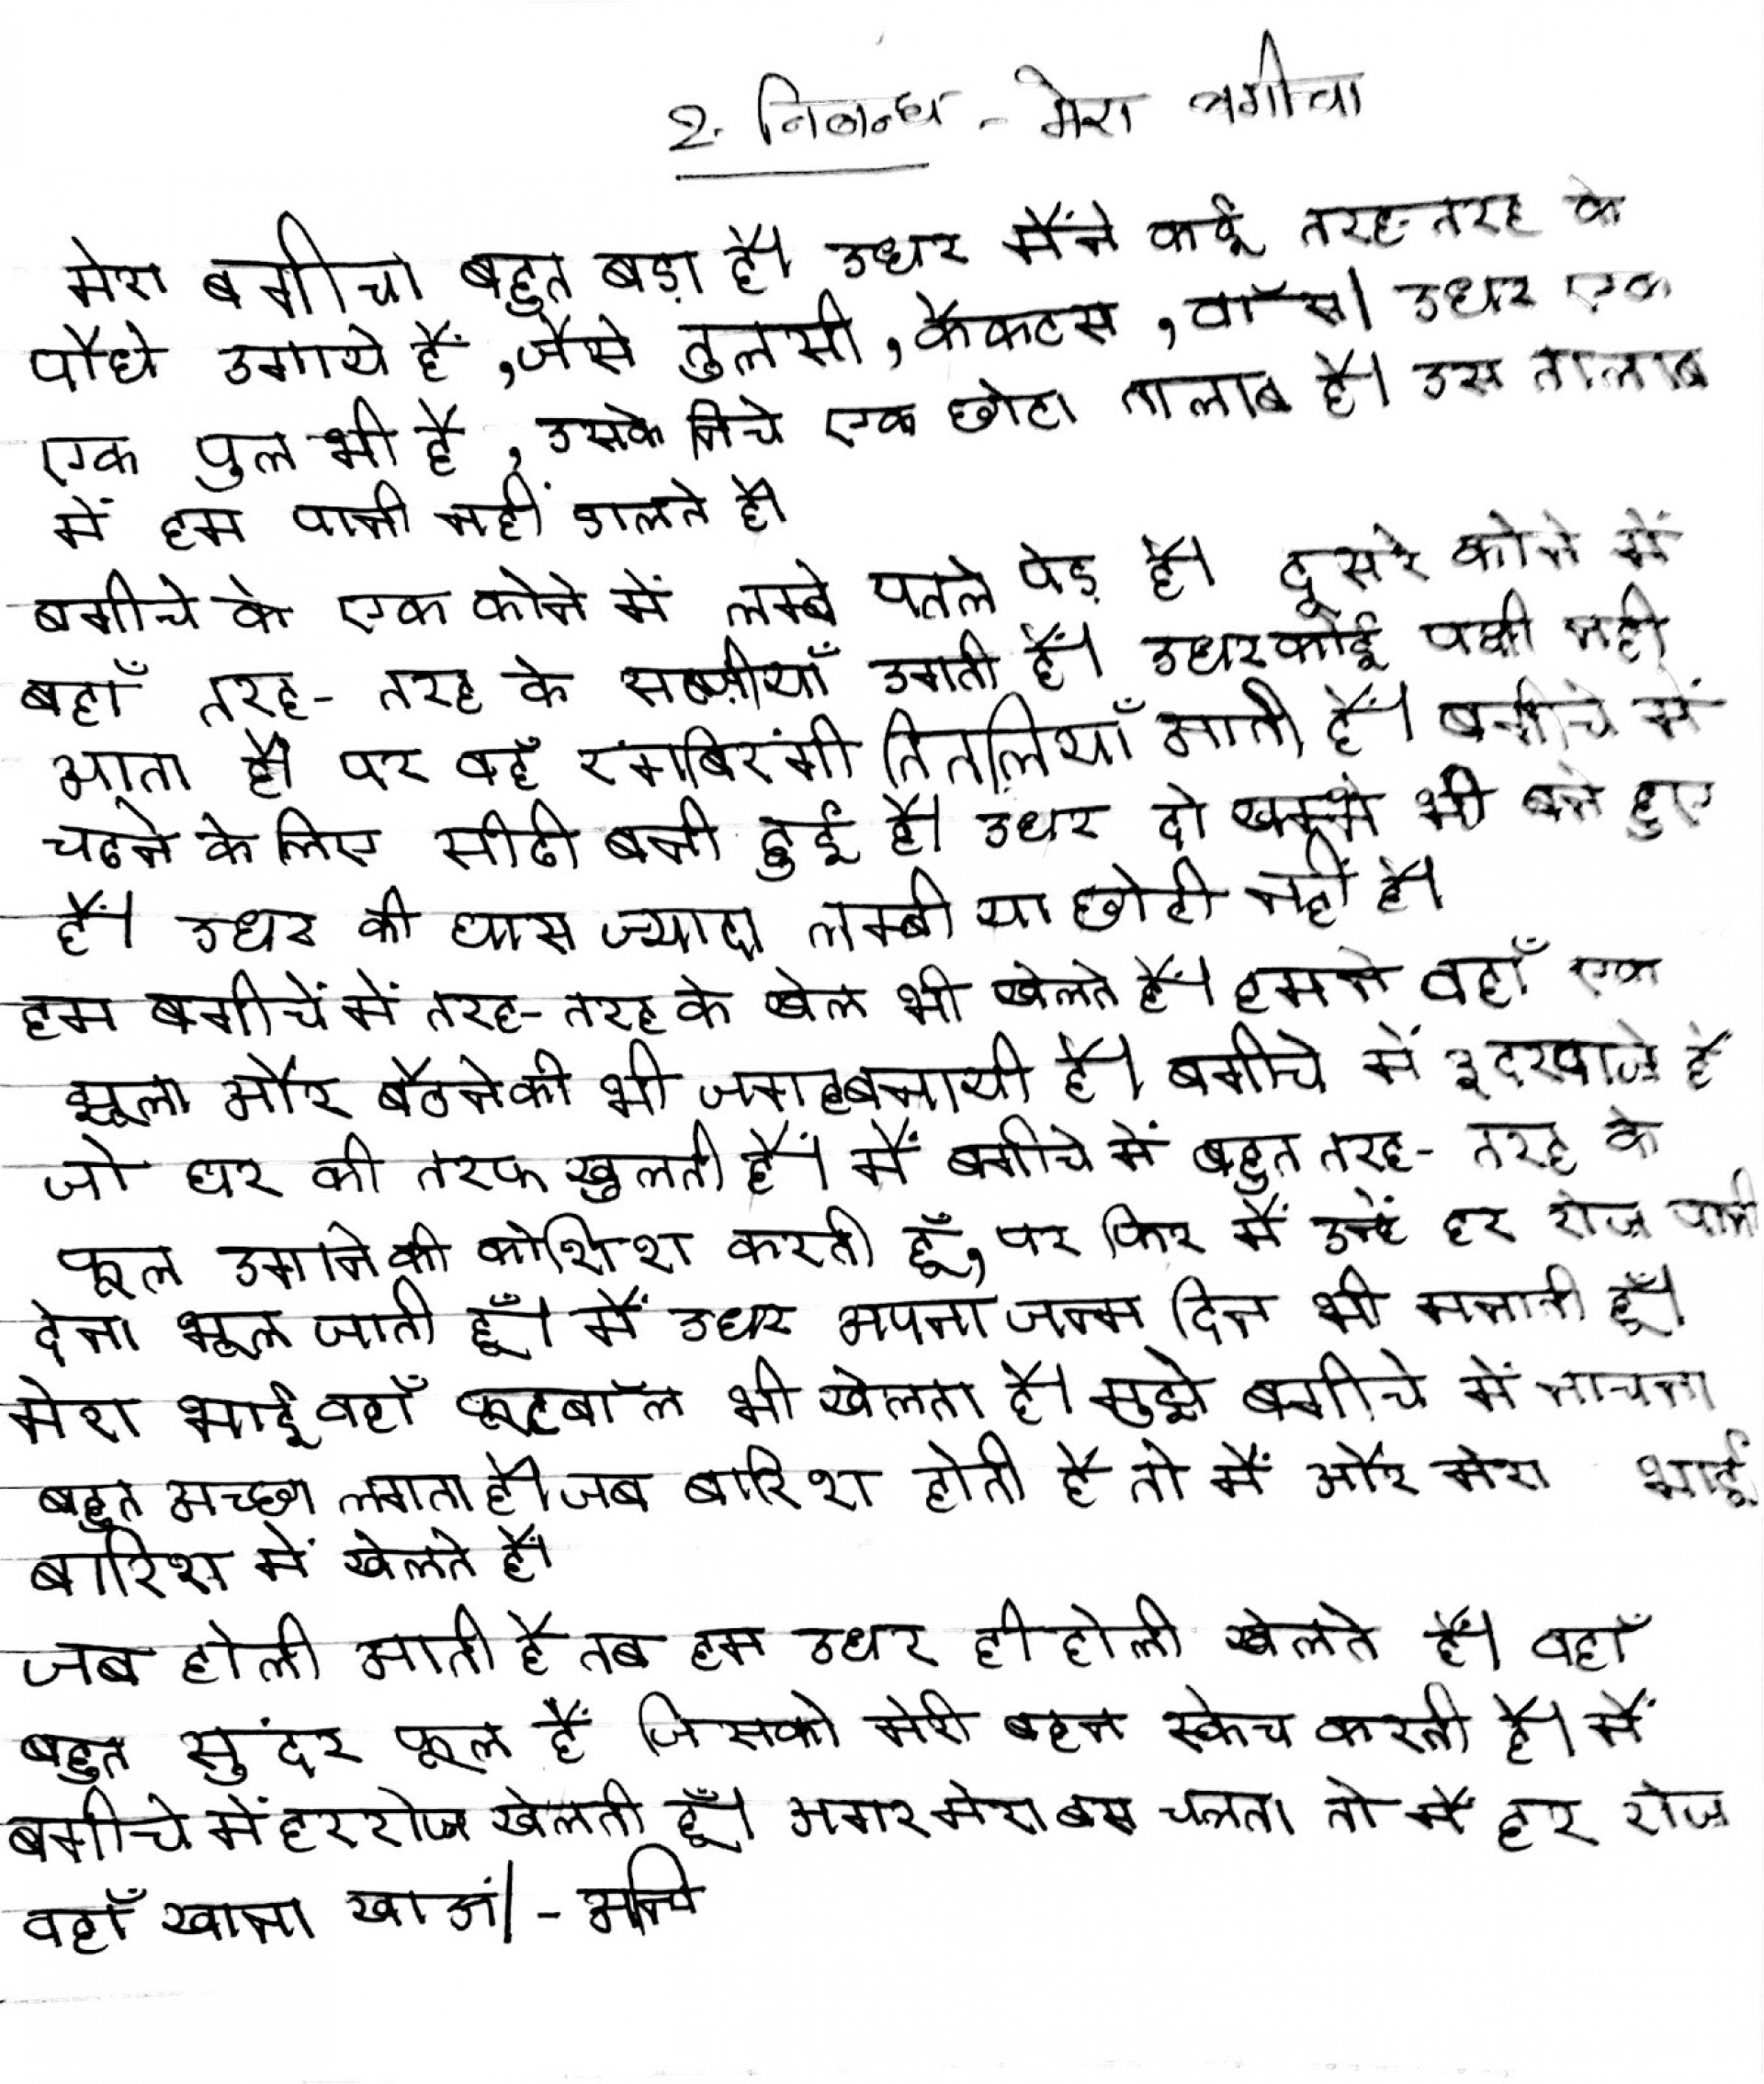 015 Essay On Garden Example Hindi Homework Writing Service Gard Stunning Gardening By Henk Gerritsen In Sanskrit Language 1920